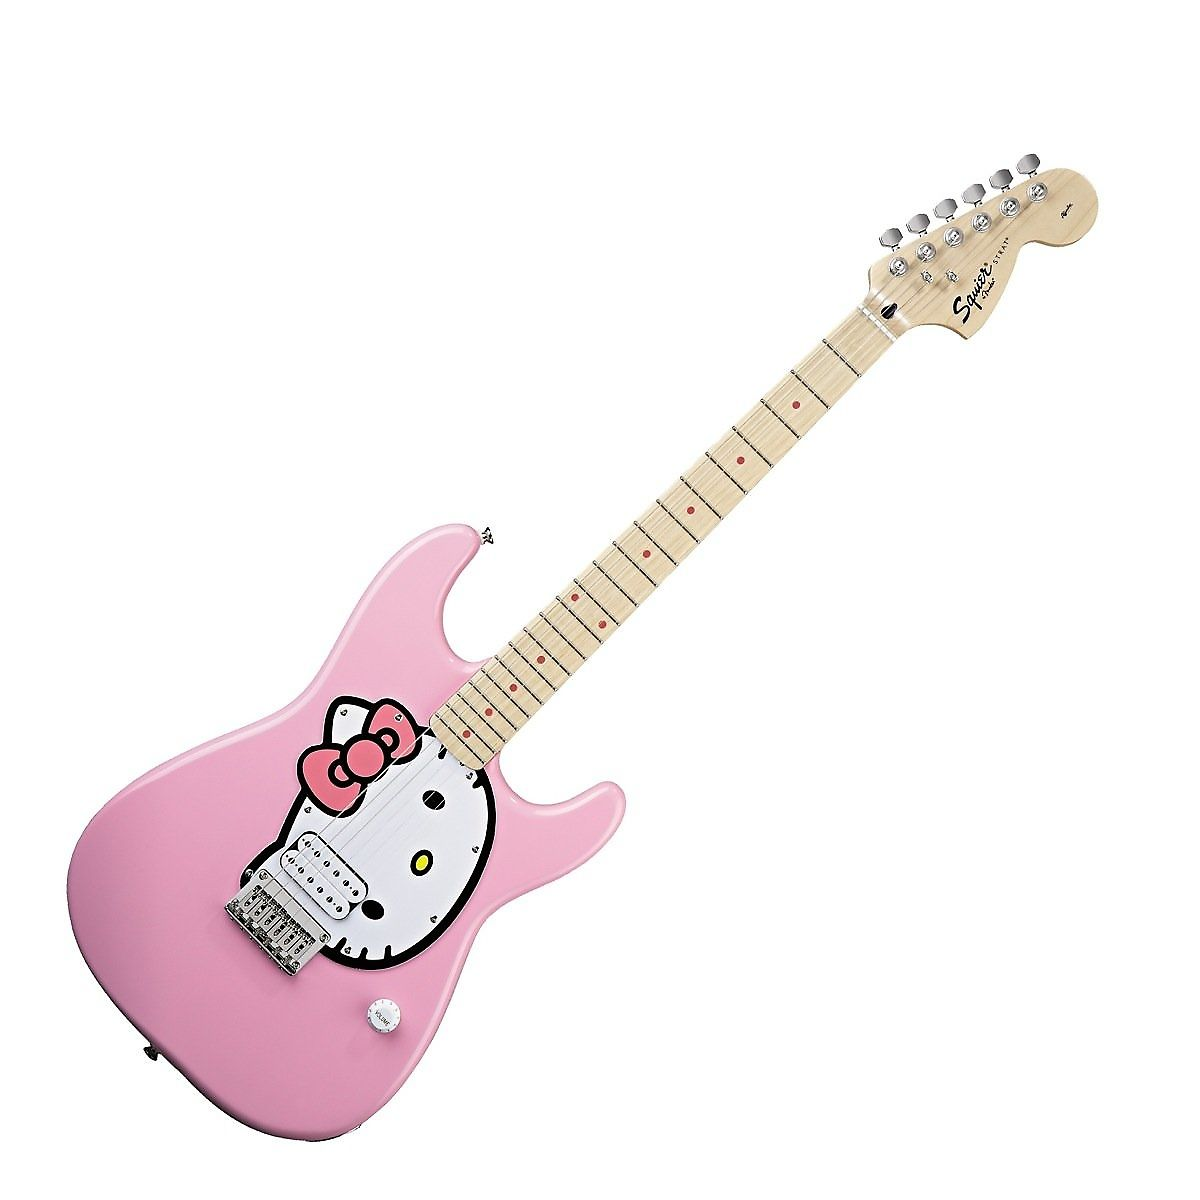 Squier Hello Kitty Stratocaster Pink | Reverb